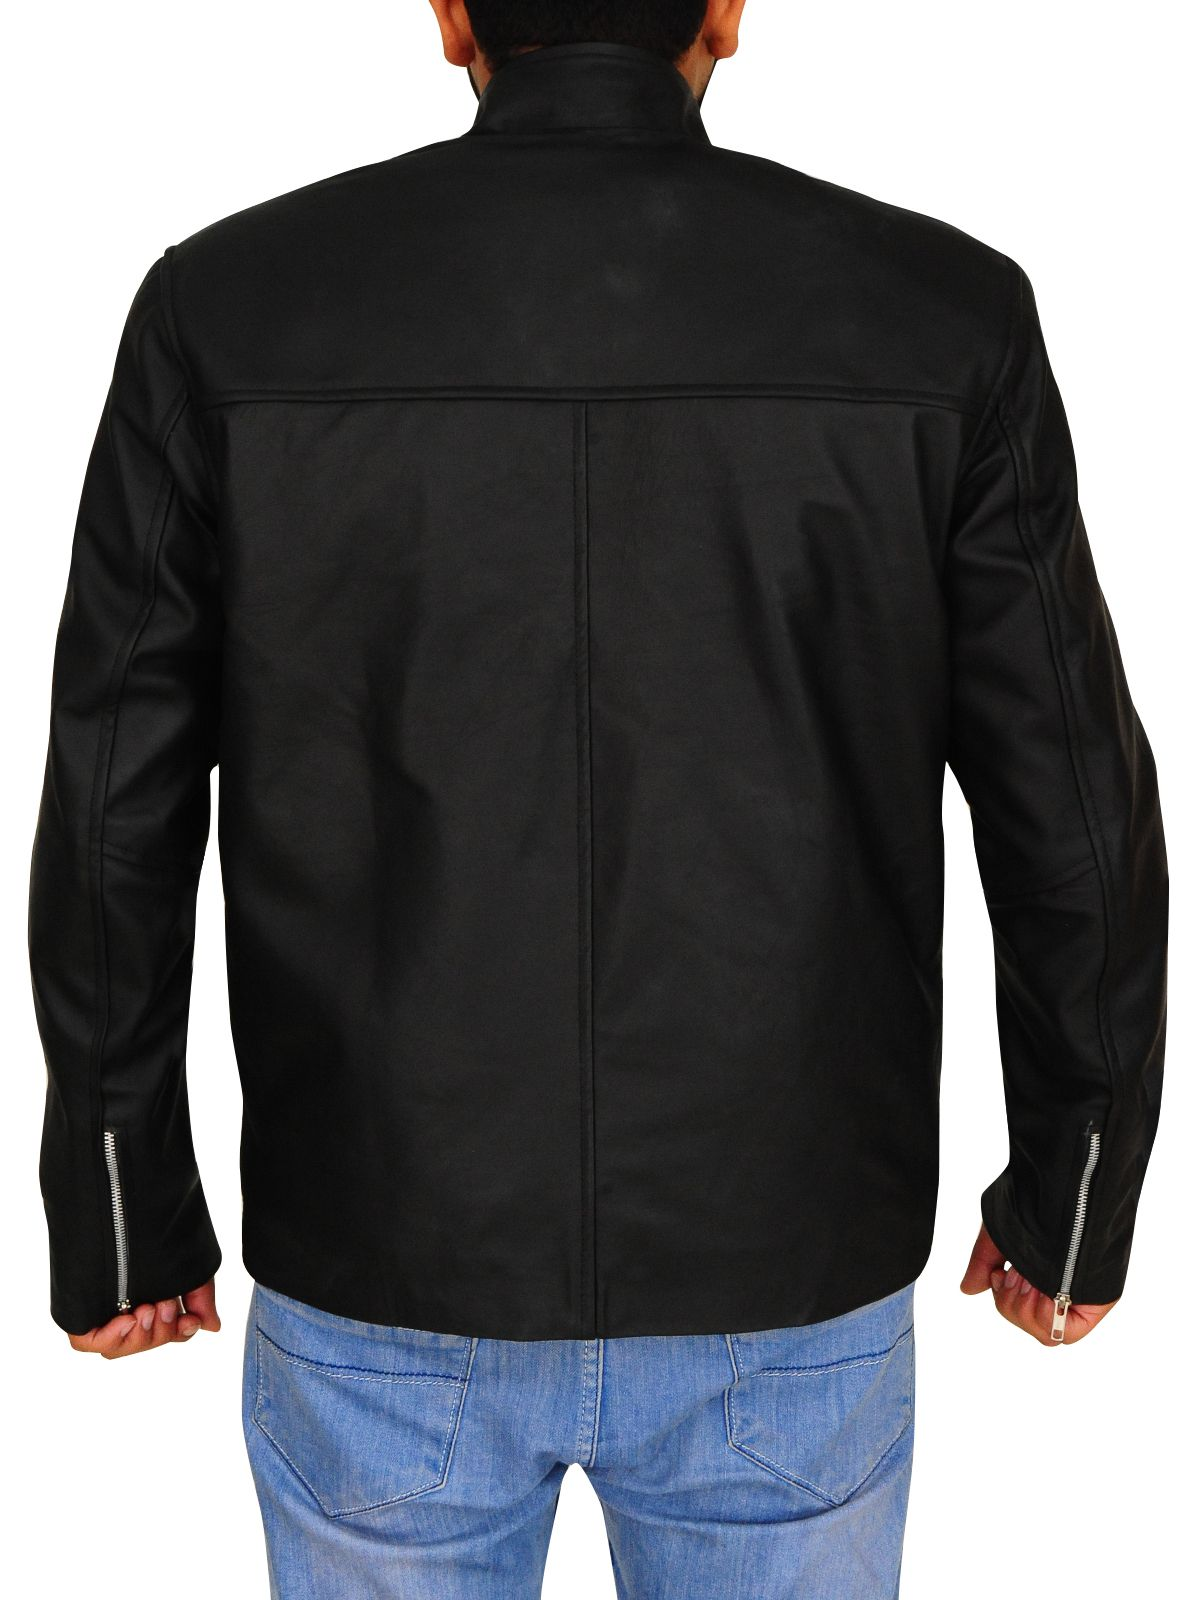 Pin by Top Celebs Jackets on Movies Leather jacket